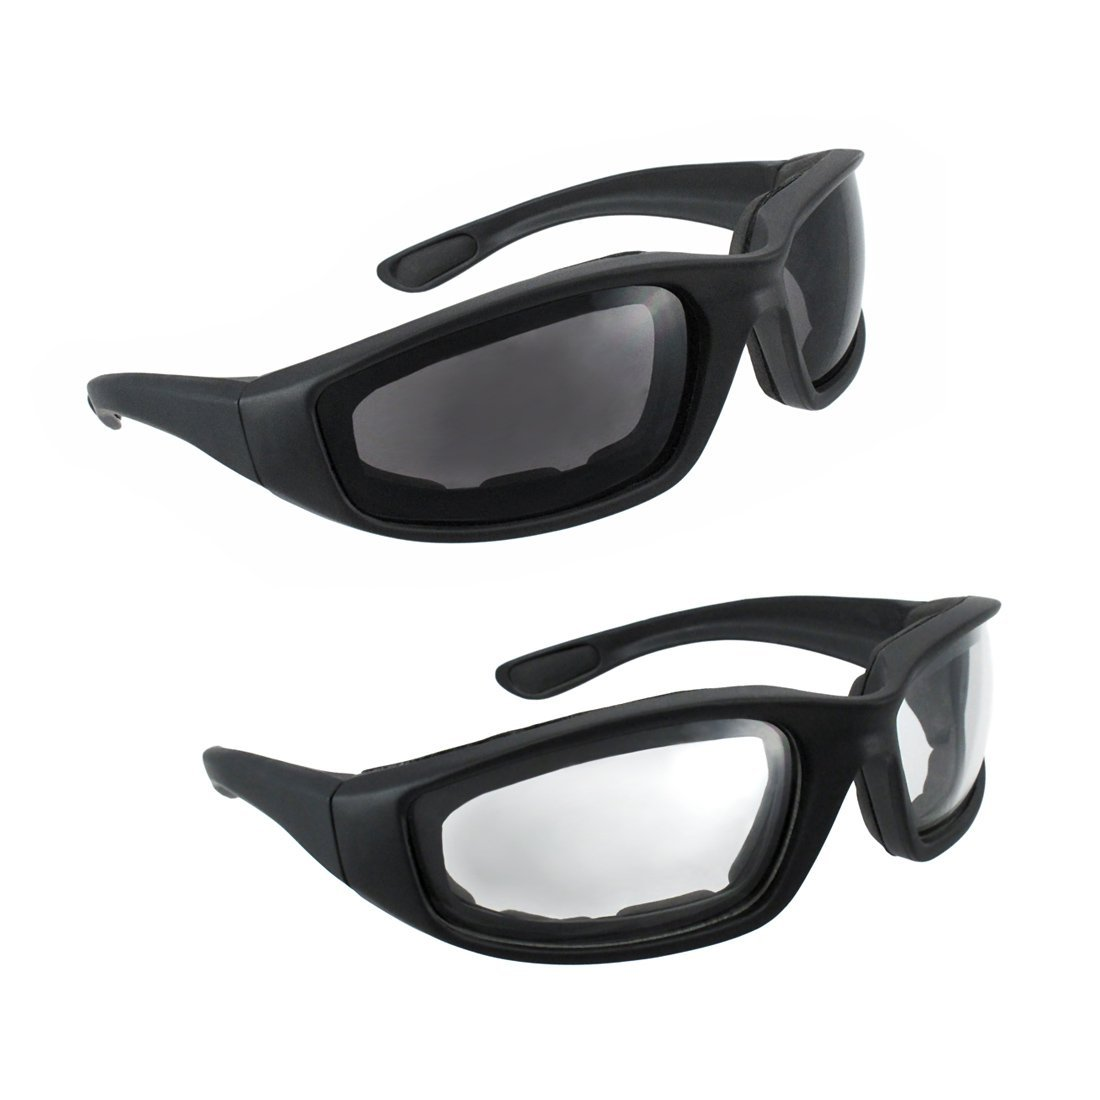 Motorcycle Riding Glasses set, one smoke and one clear